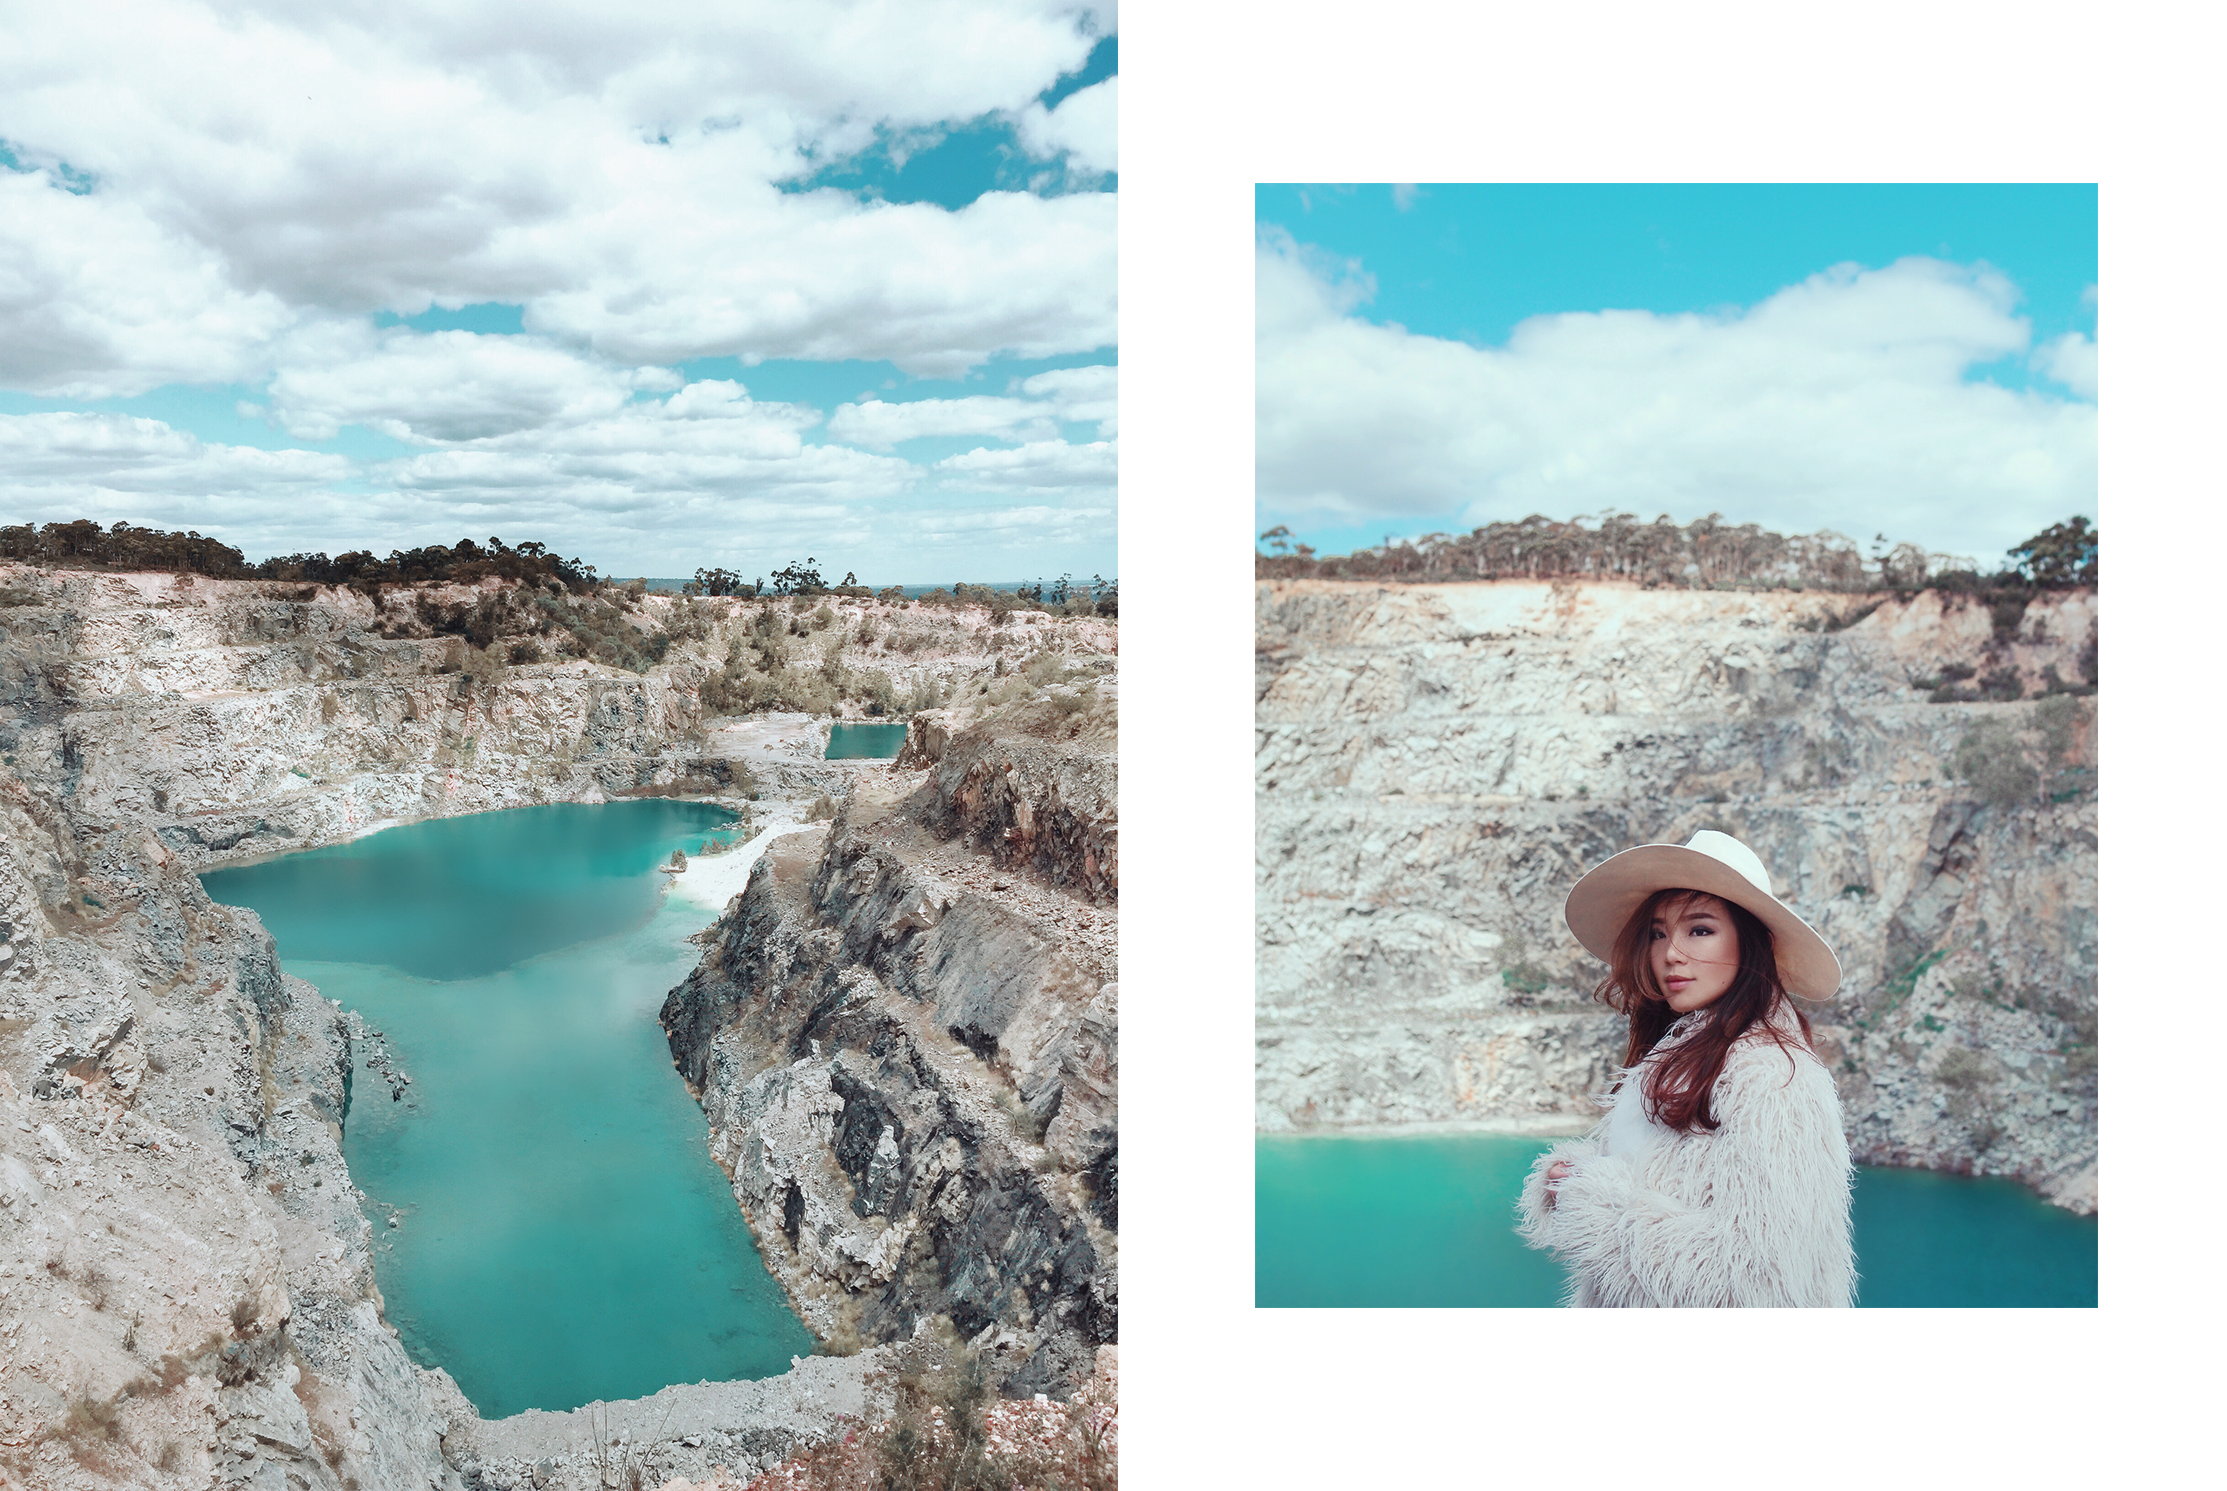 willabelle-ong-paledivision-street-style-fashion-travel-lifestyle-blog-australia-how-to-go-map-perth-red-hill-quarry-exact-location-address-western-australia-secret-hidden-spots-explore-2